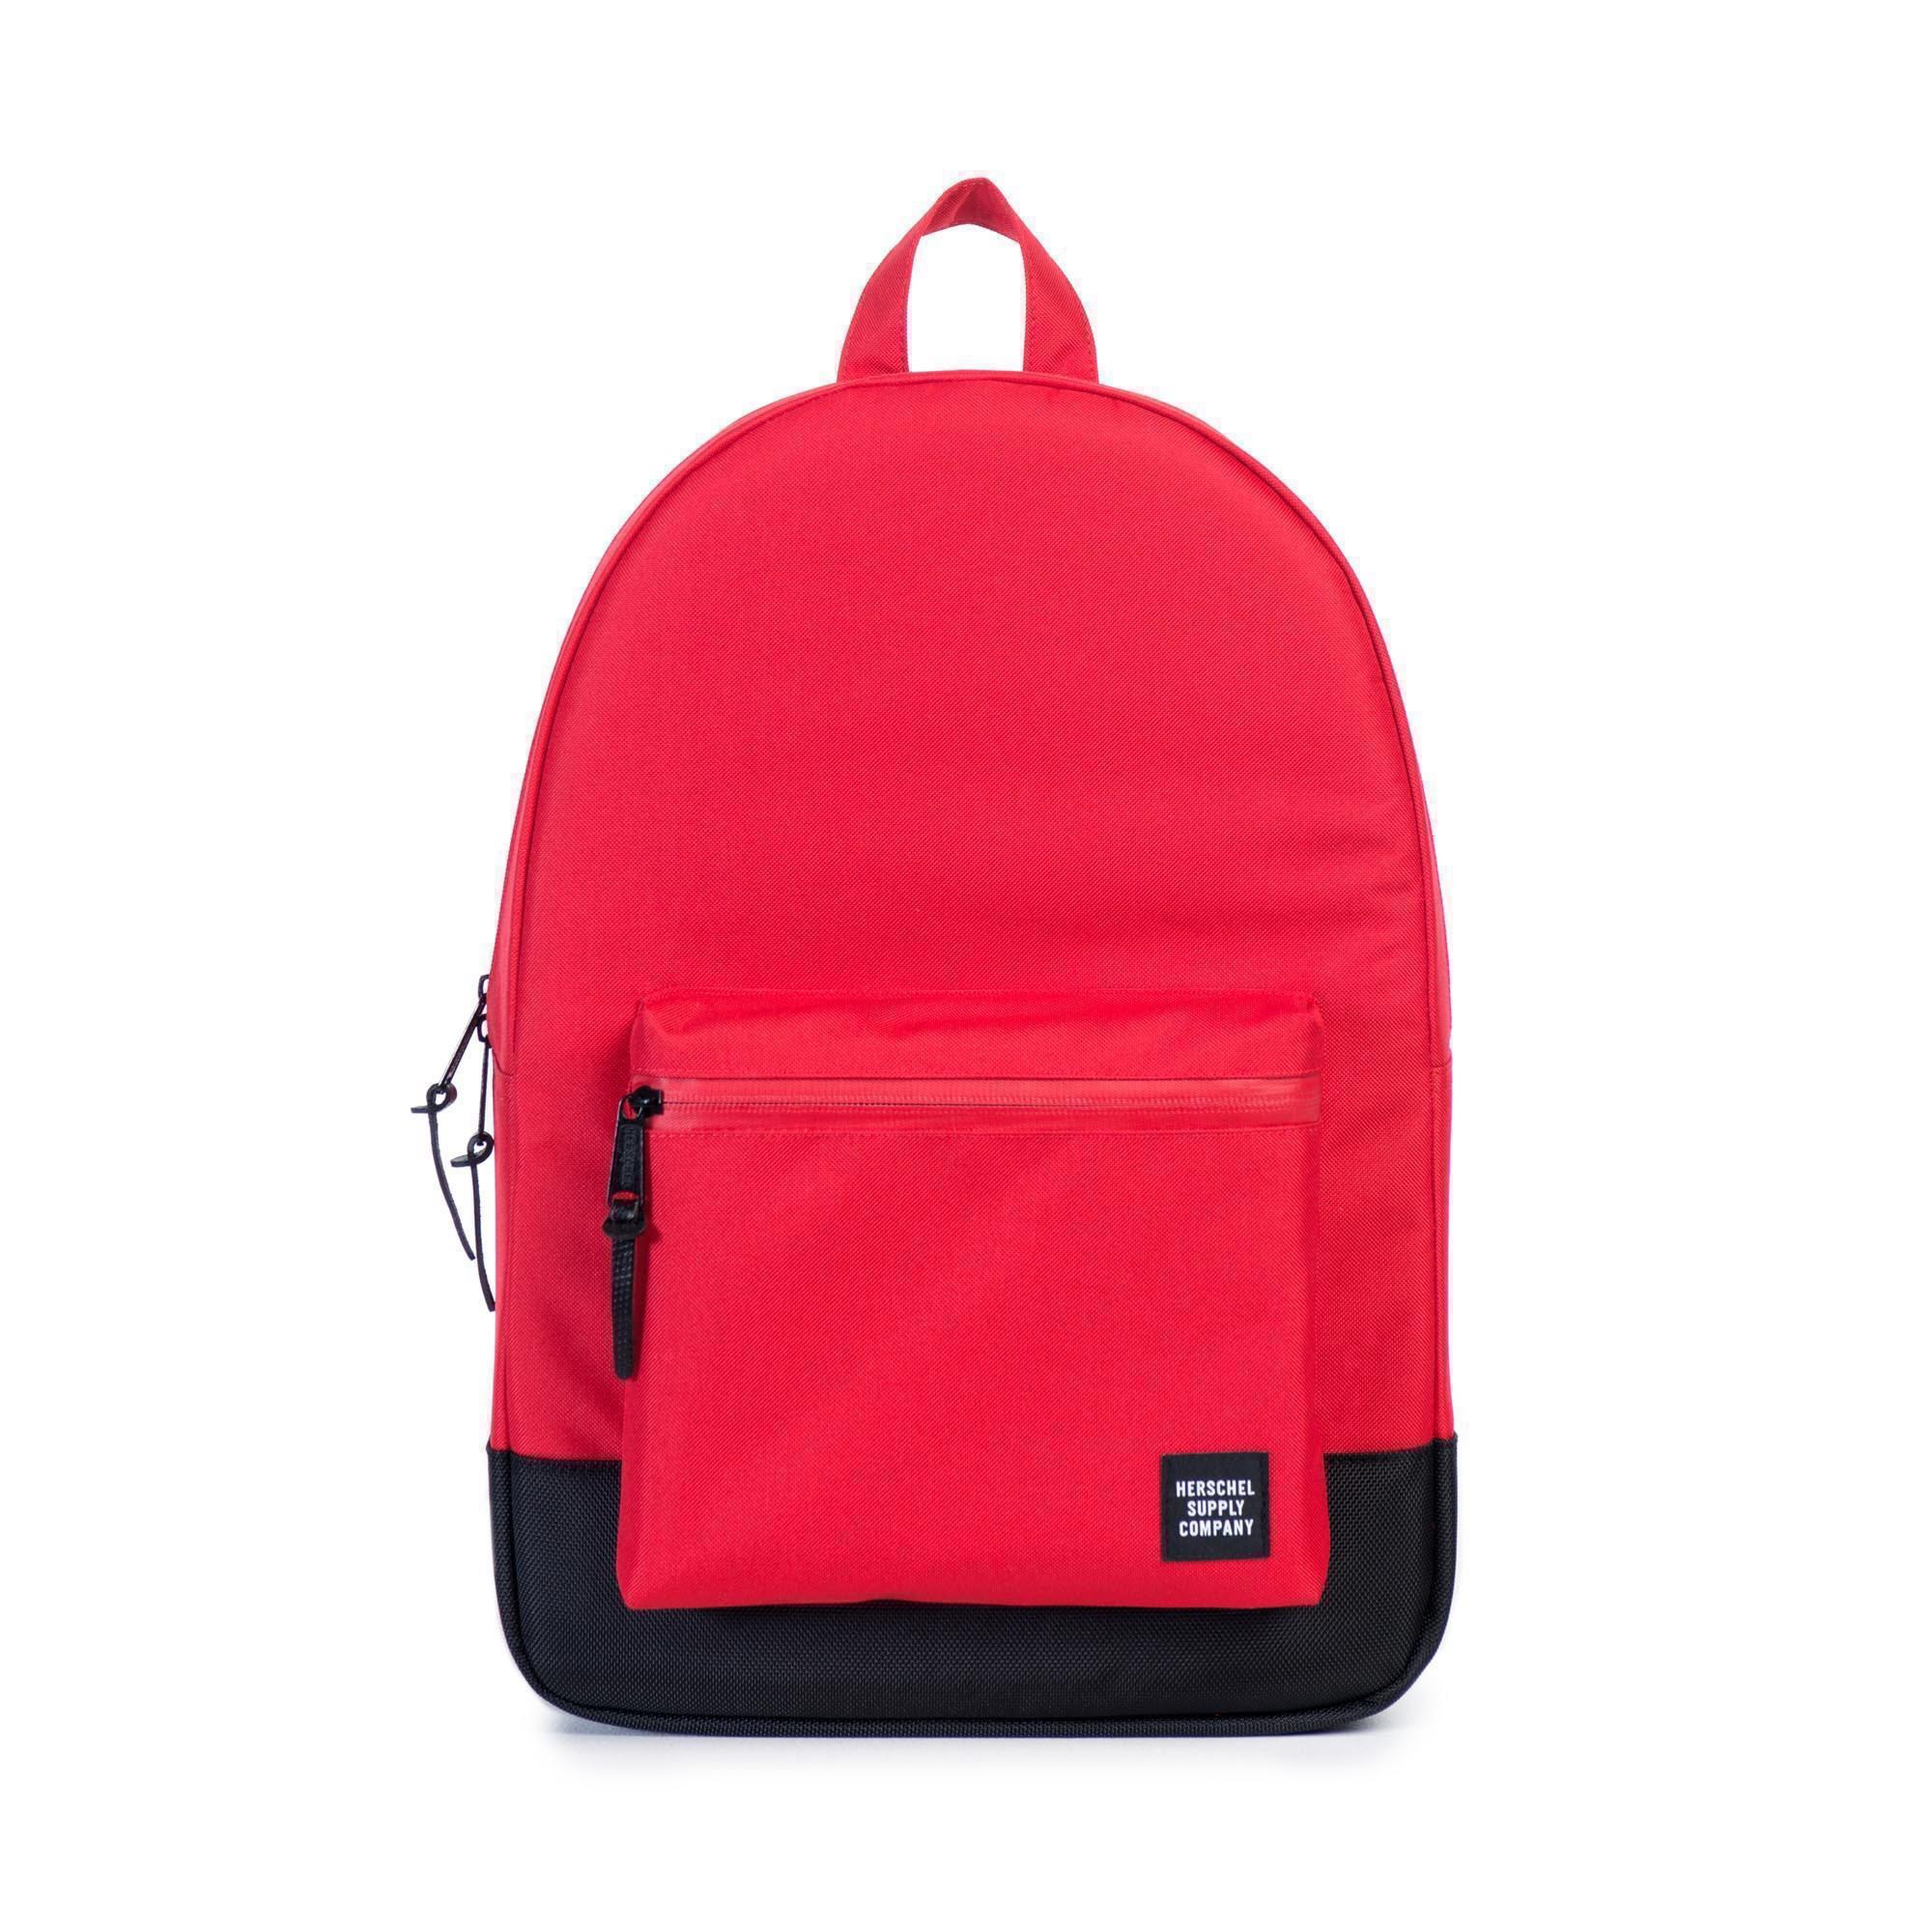 1aaecd26d70 reduced price) AUTHENTIC Herschel Settlement Backpack Black ...